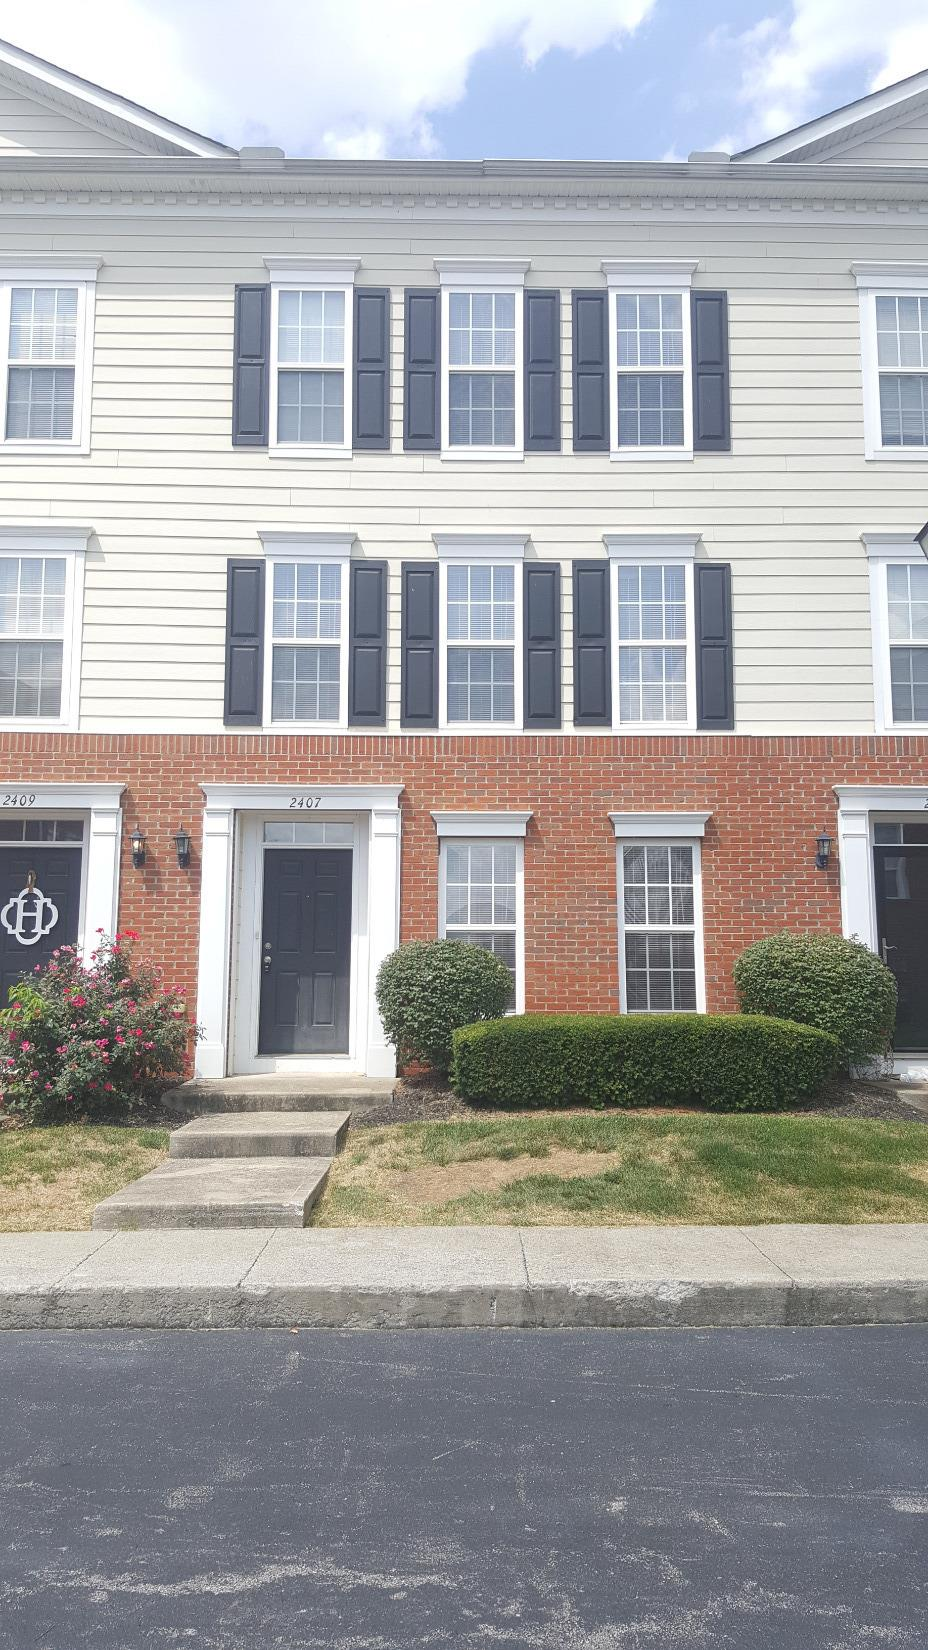 Gorgeous%20townhome%20in%20a%20convenient%20part%20of%20Hamburg.%20This%20townhome%20has%202%20bedrooms,%202.5%20bath,%20an%20open%20layout,%20and%20both%20bedrooms%20have%20full%20bathrooms.%20This%20is%20a%203%20story%20townhome.%20On%20the%20first%20floor,%20you%20have%20a%20big%202%20car%20garage%20and%20a%20finished%20bonus%20room%20(office%20or%20rec%20room%20or%20possibly%20a%20guest%20room).%20On%20the%20second%20floor,%20you%20have%20a%20huge%20kitchen%20with%20island,%20a%20big%20breakfast%20area%20and%20it%20all%20opens%20into%20a%20spacious%20family%20room.%20On%20the%20third%20floor,%20you%20have%20the%20two%20big%20bedrooms,%20big%20closets,%20and%20laundry%20room%20on%20this%20floor%20too.%20This%20home%20has%20new%20paint,%20new%20carpet%20throughout,%20and%20much%20more!%20Move-in%20condition.%20You%20can%20walk%20to%20the%20new%20YMCA,%20restaurants,%20shopping,%20and%20movies.%20You%20have%20access%20to%20clubhouse%20with%20pool%20and%20weight%20room.